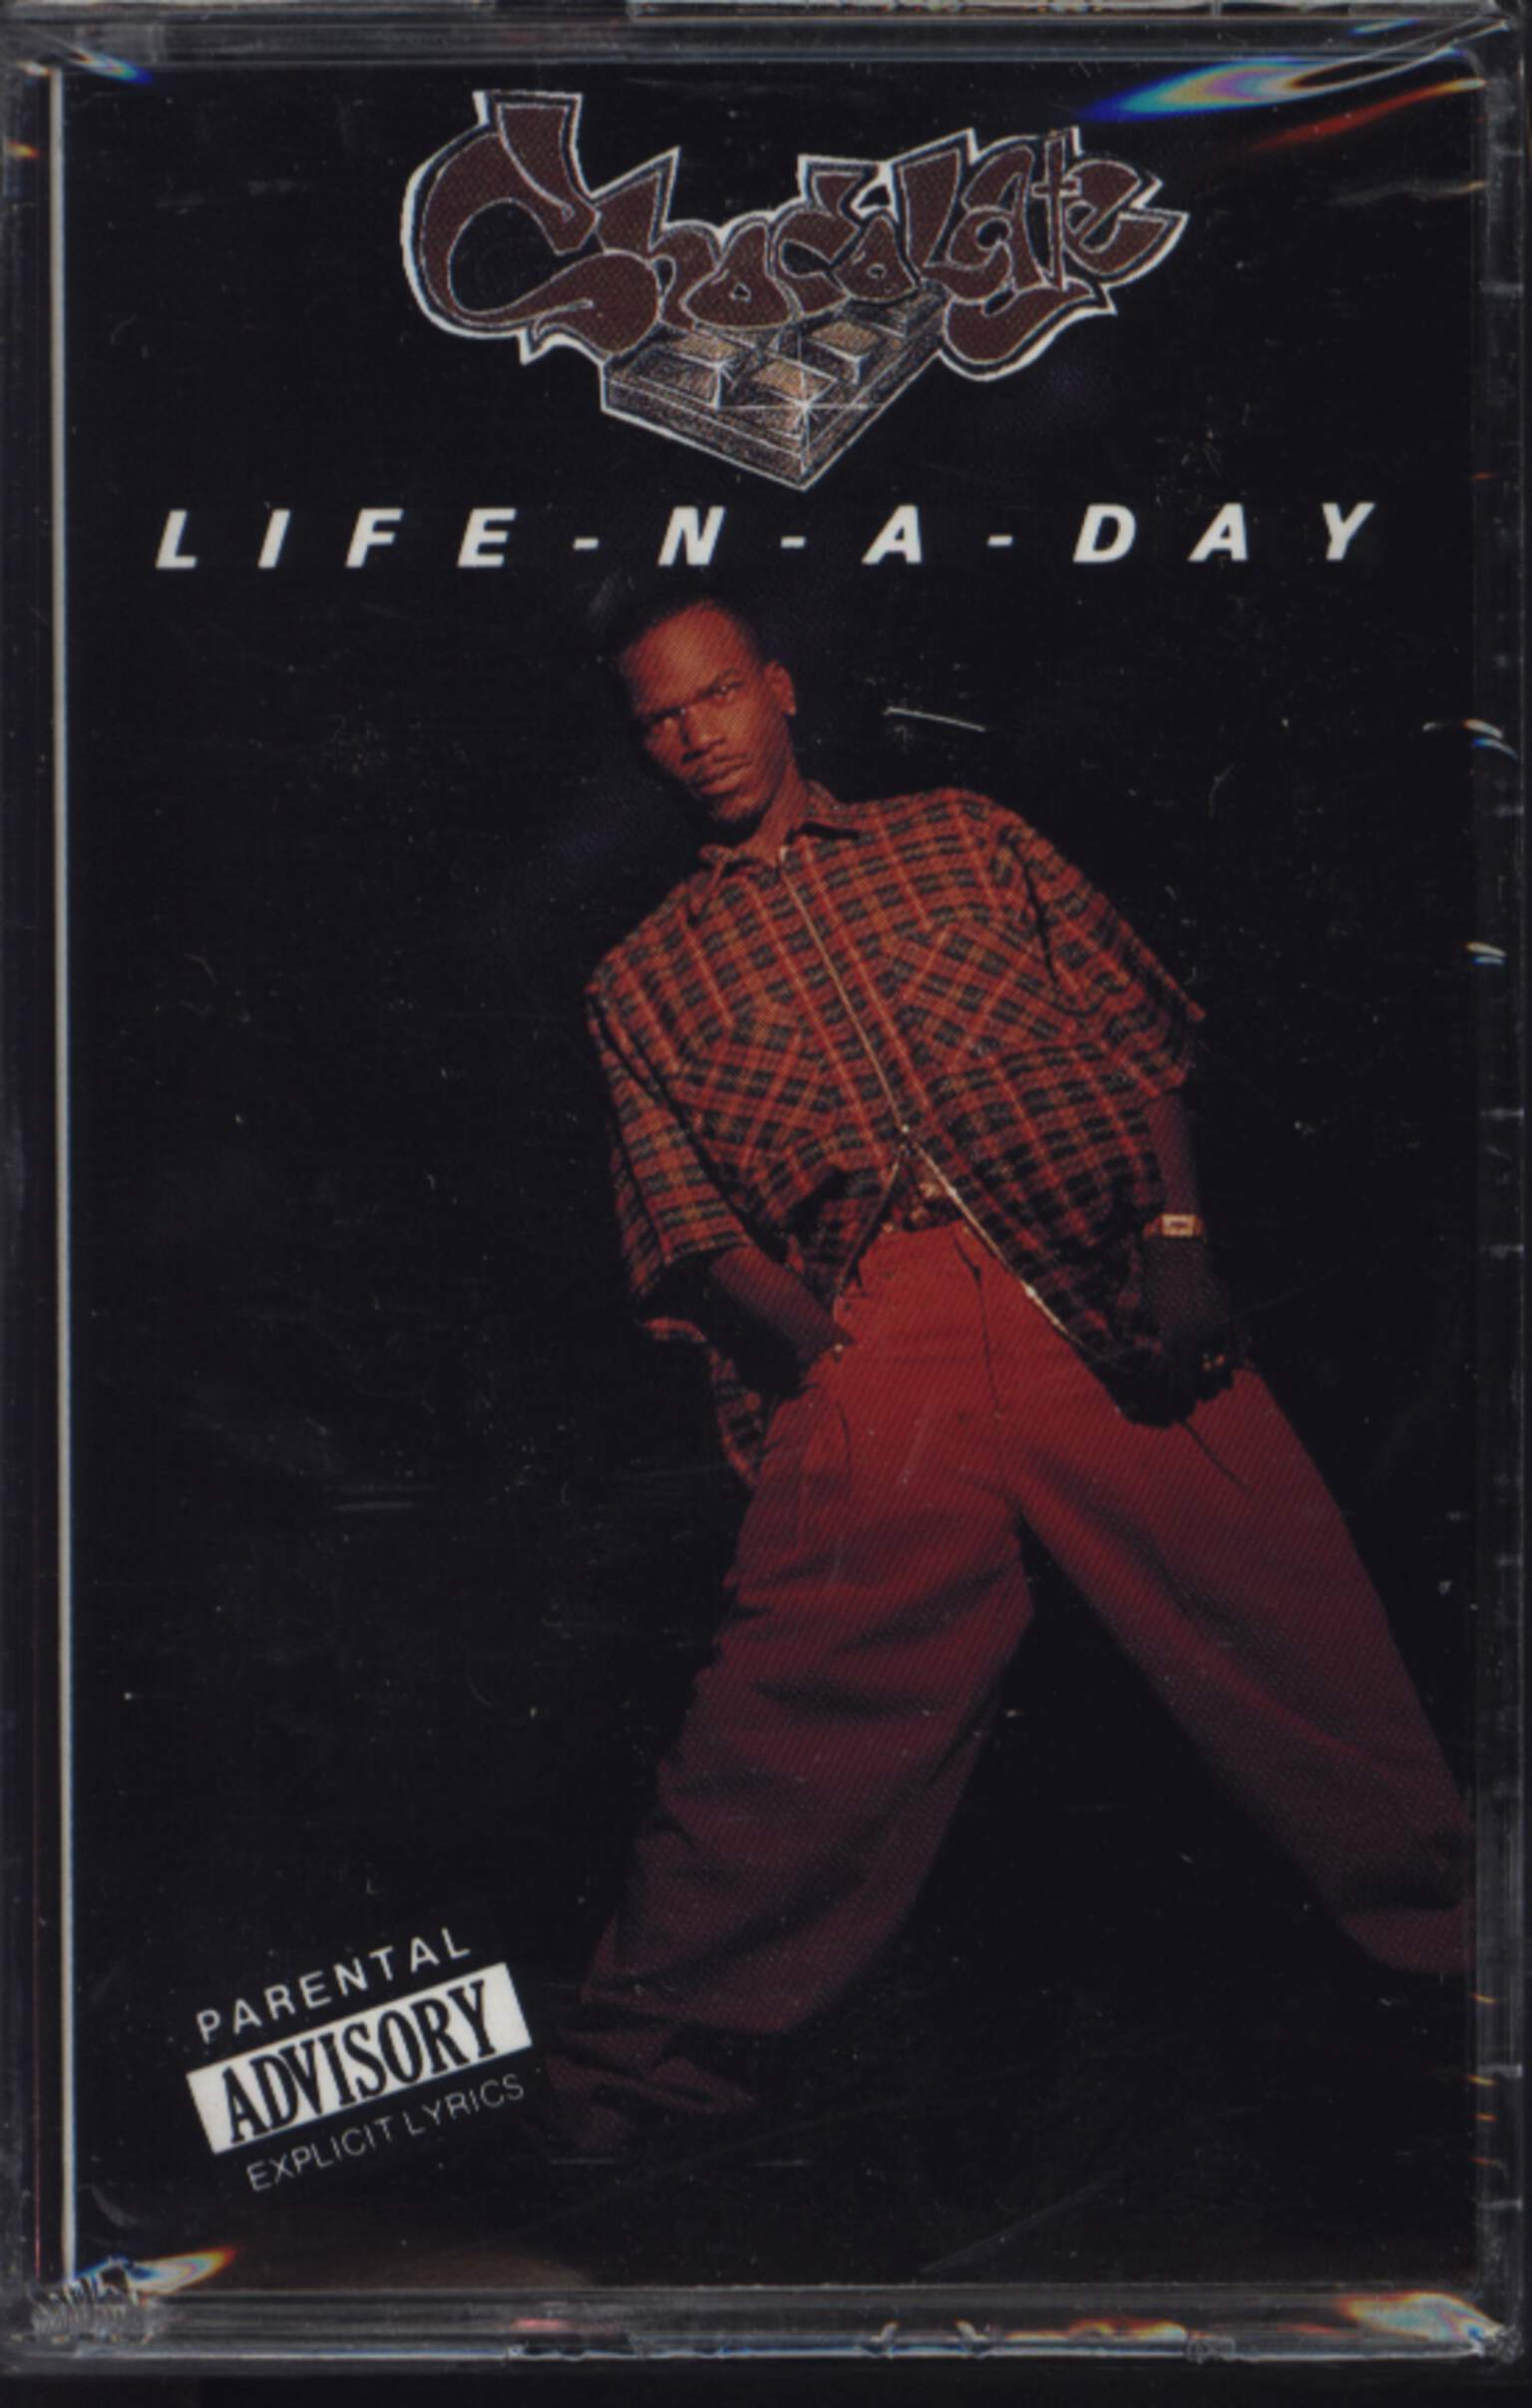 Chocolate: Life-N-A-Day, Compact Cassette